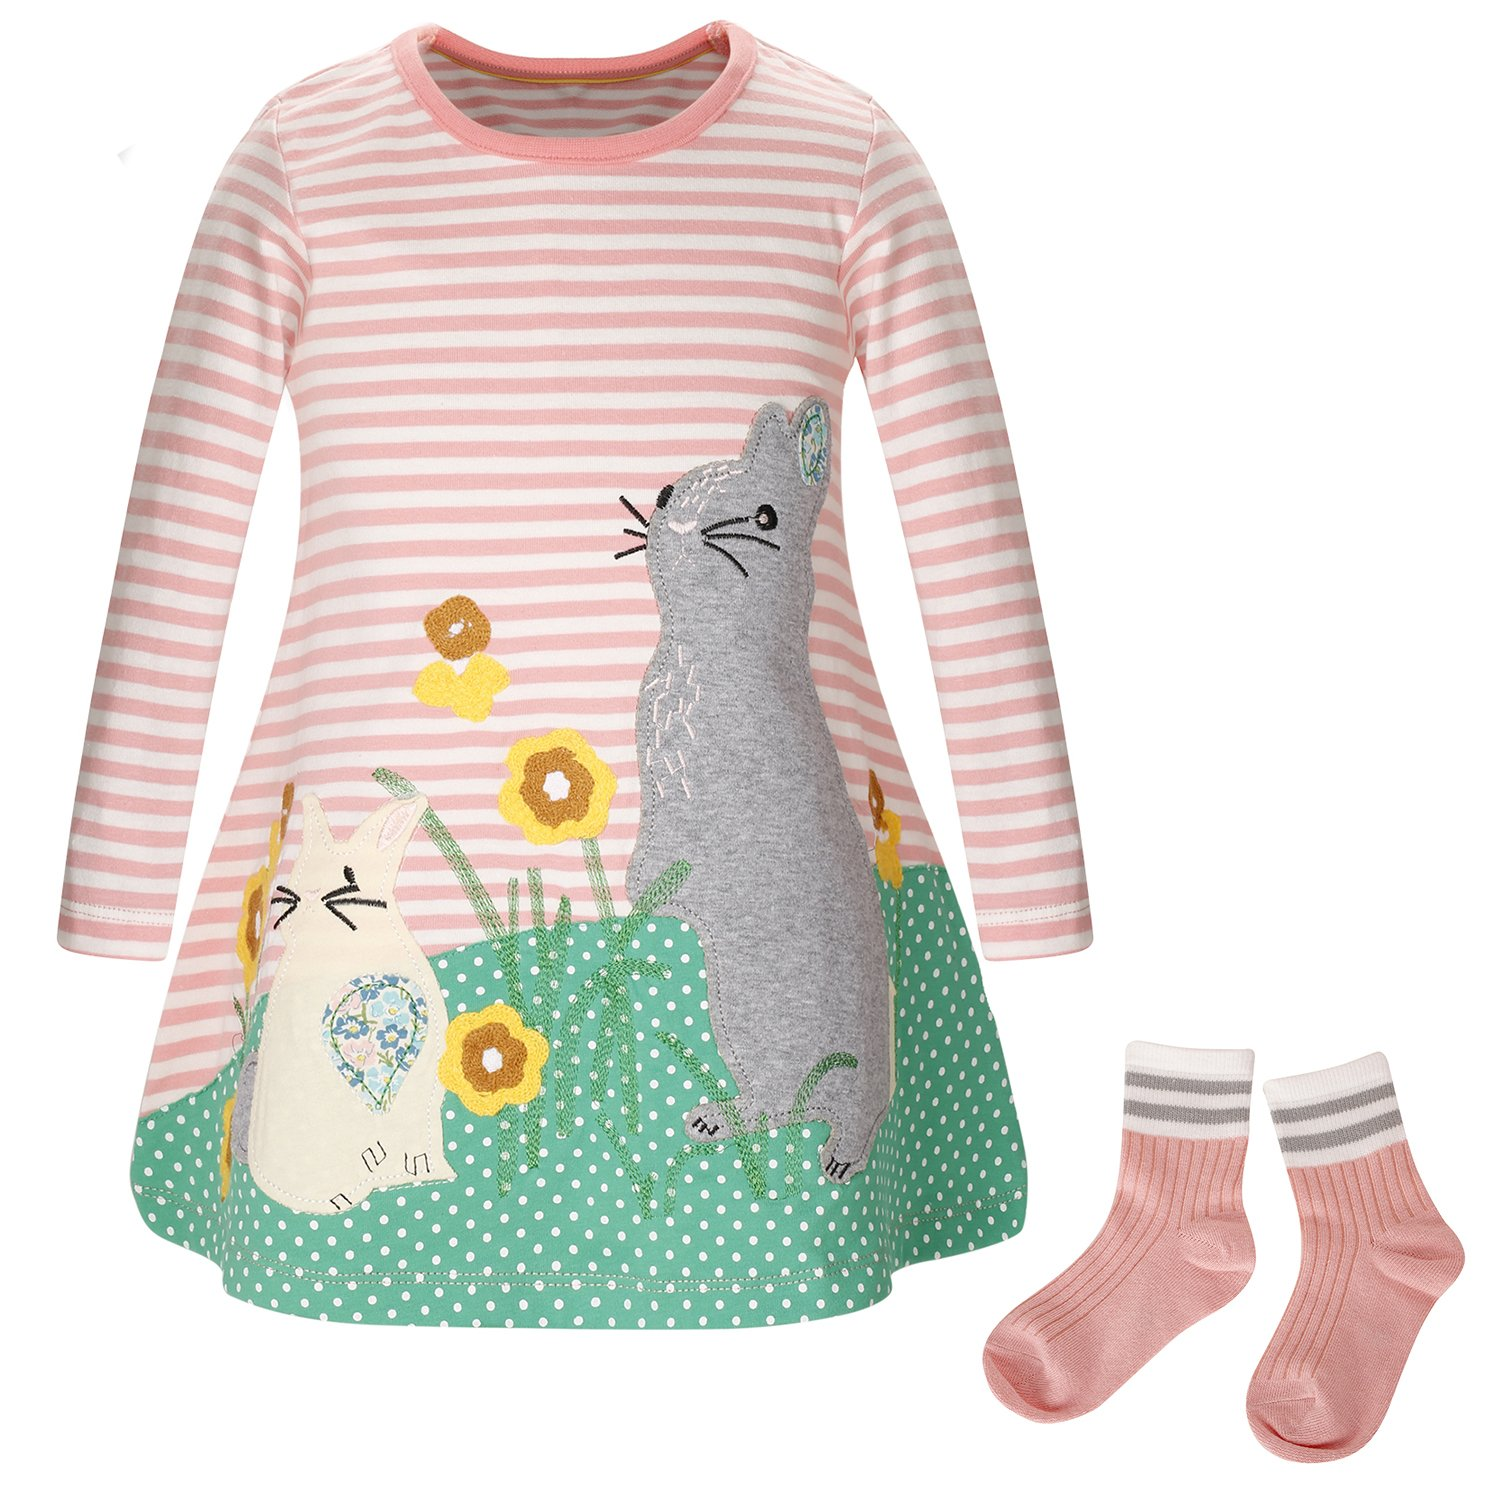 ZOEREA Baby Girl Cotton Dress Long Sleeve Printed Pattern Dress with Socks 5T/4-5 Years